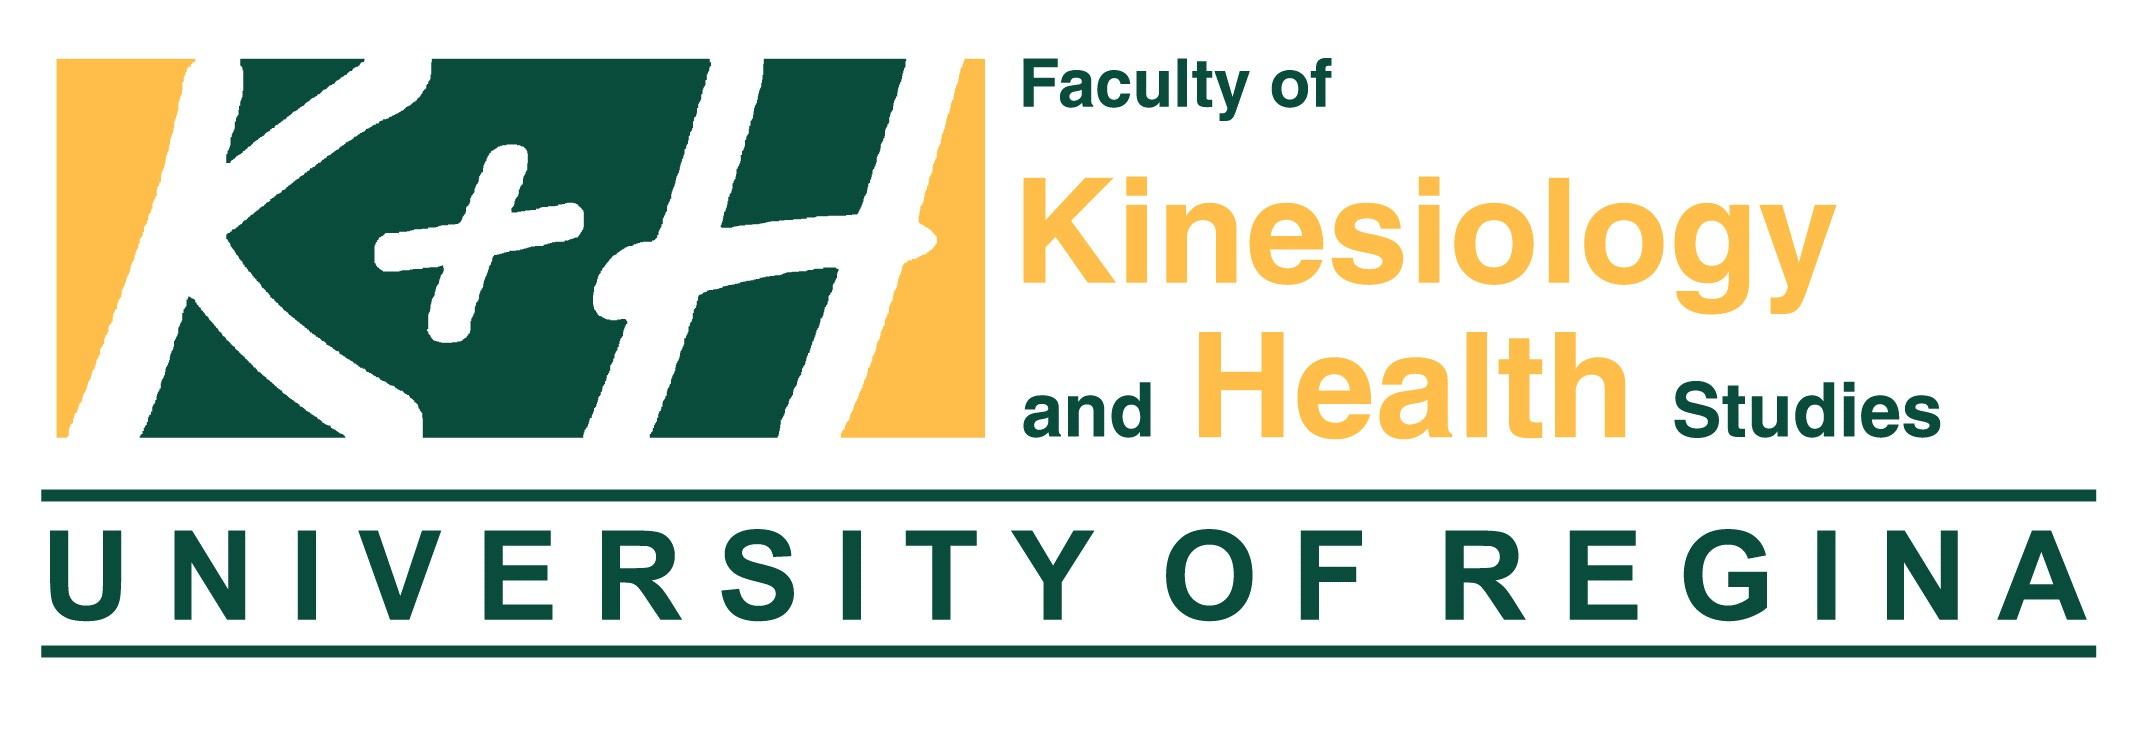 The University of Regina – Faculty of Kinesiology and Health Studies for hosting the Job Fair Logo